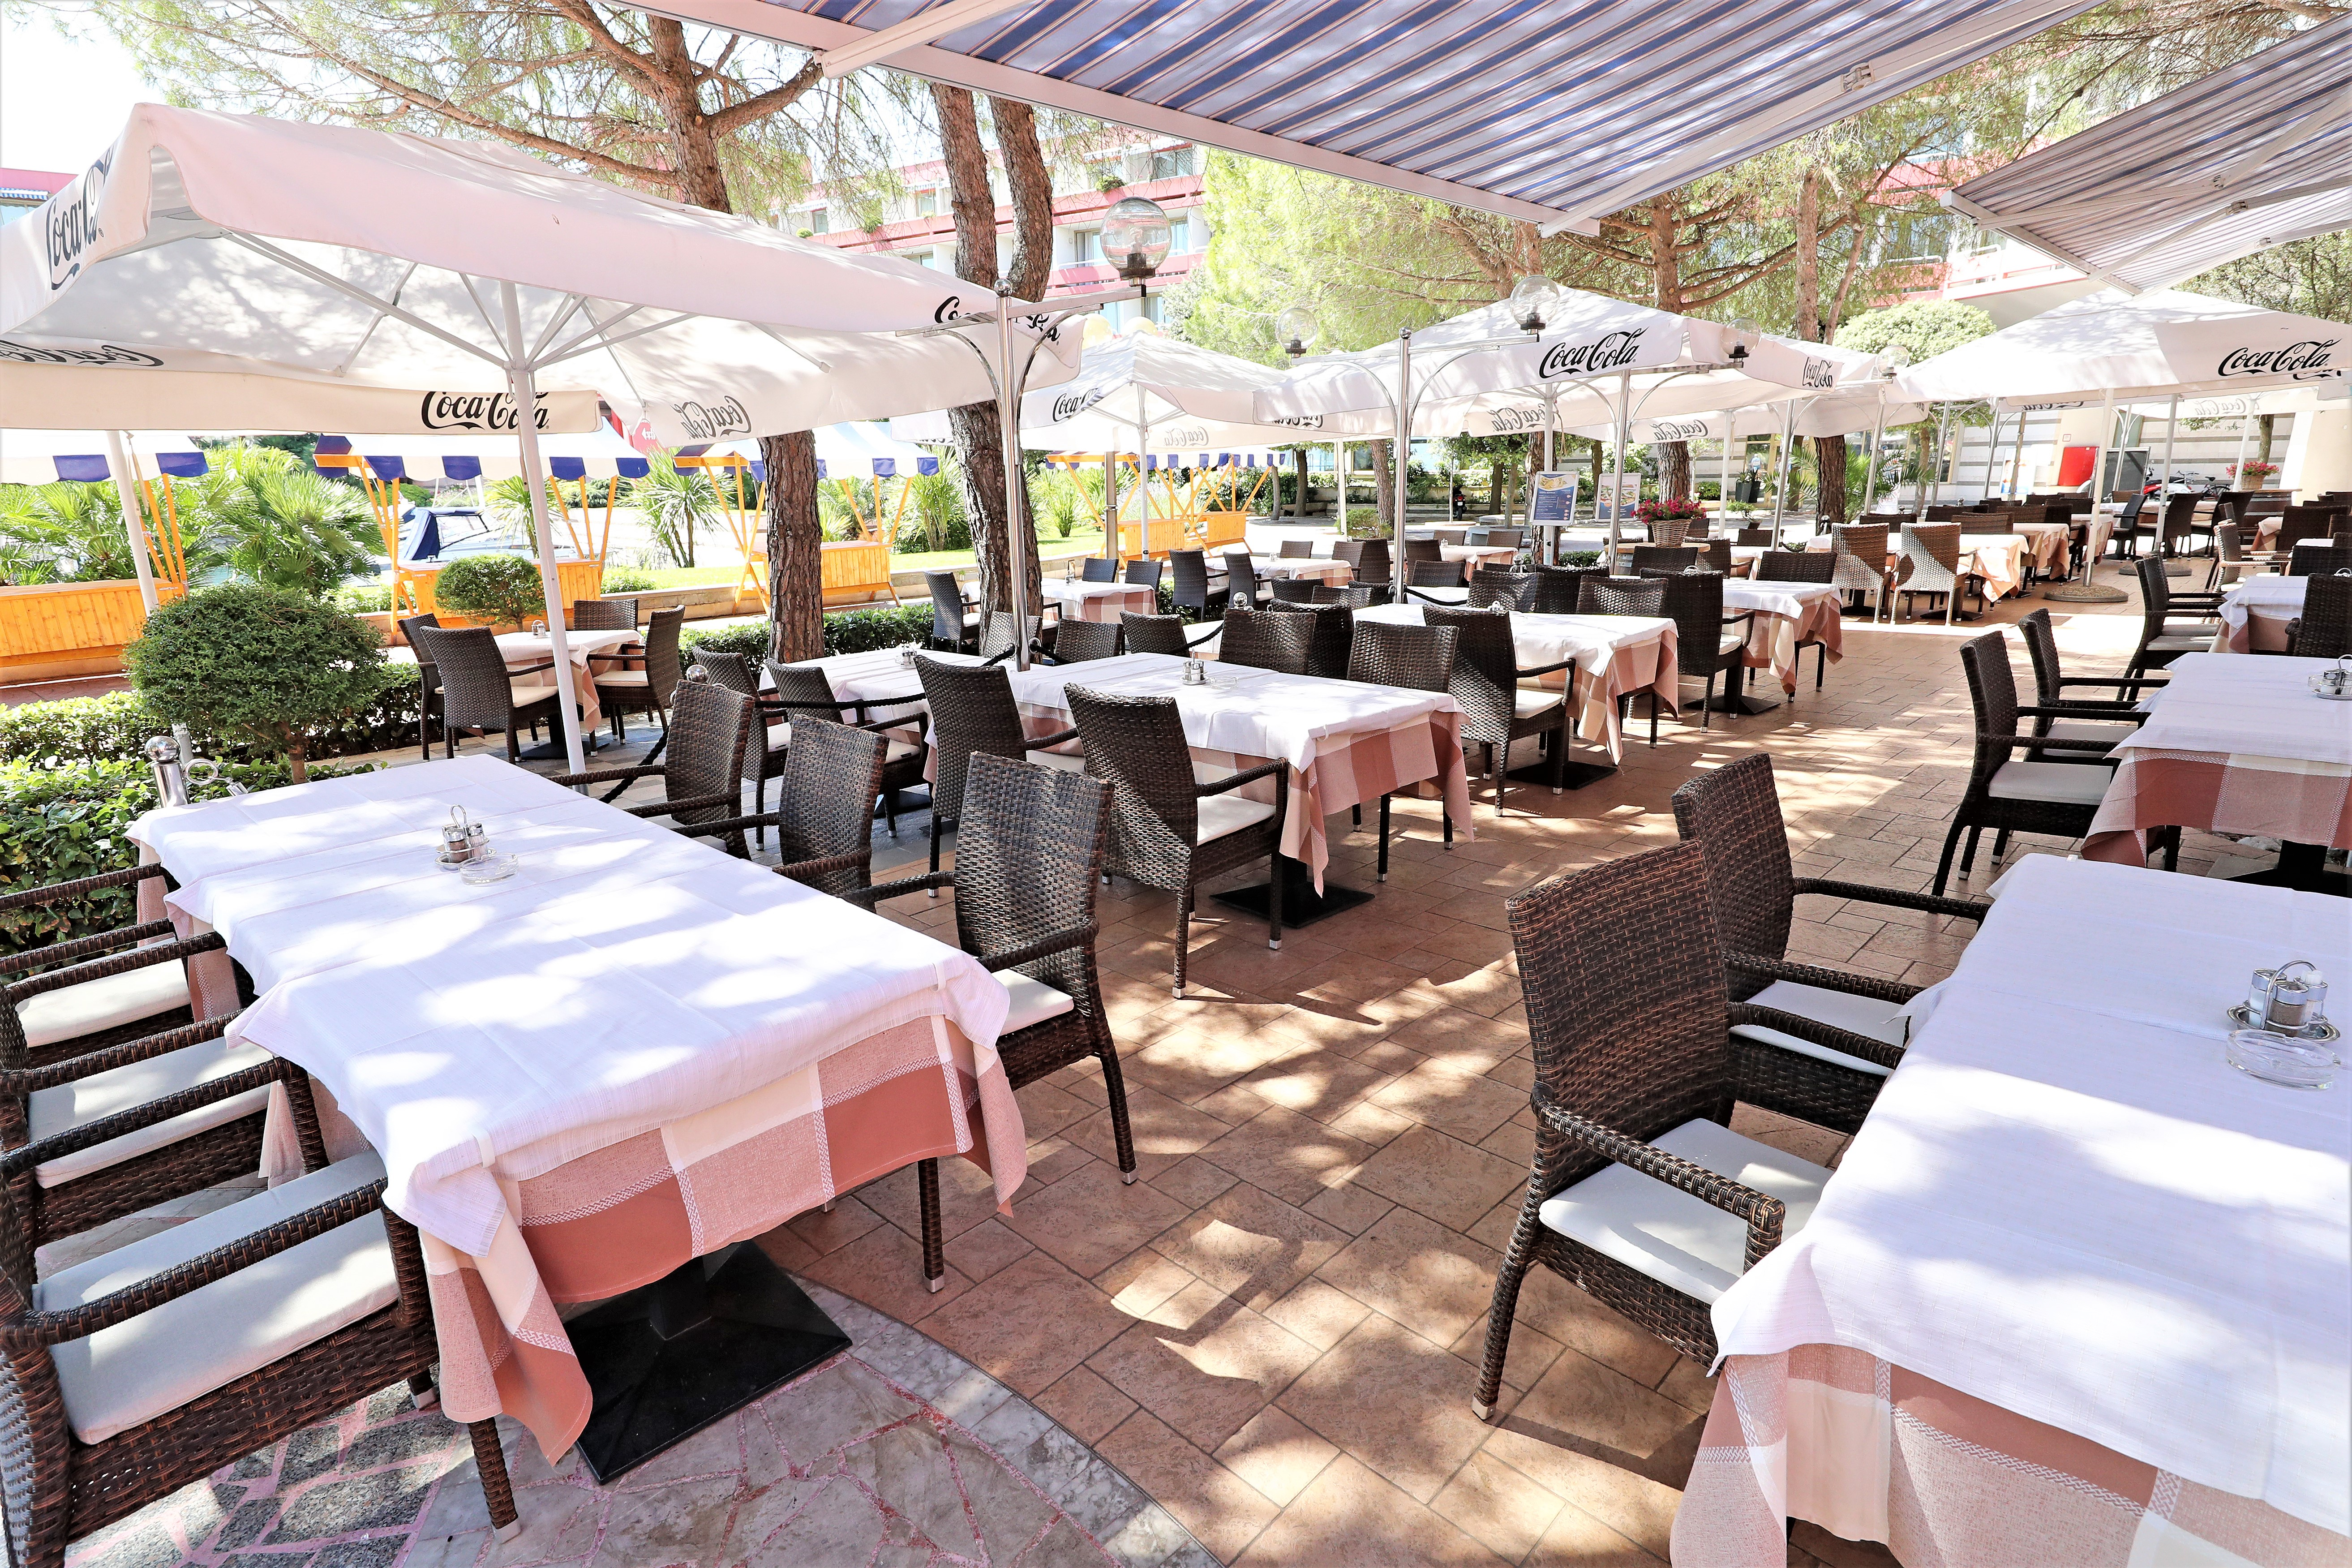 http://www.travelsys.sk/public/users/paxtour/images/fotogaleria_hotel/l_taverna_terace_2.jpg.jpg